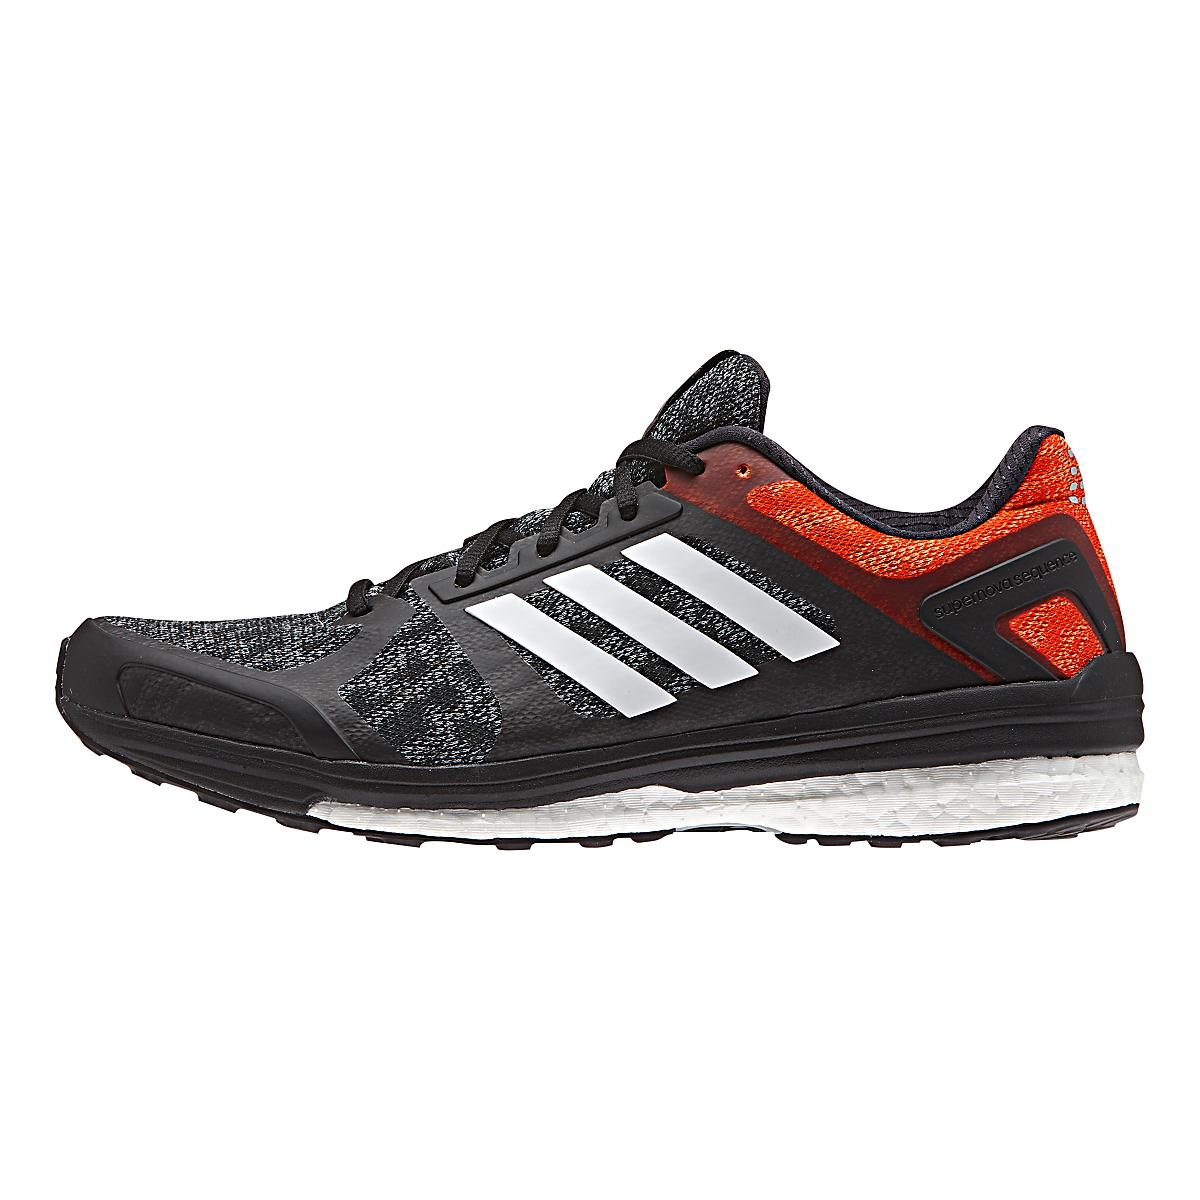 569a5bc969f01 Mens adidas Supernova Sequence 9 Running Shoe at Road Runner Sports